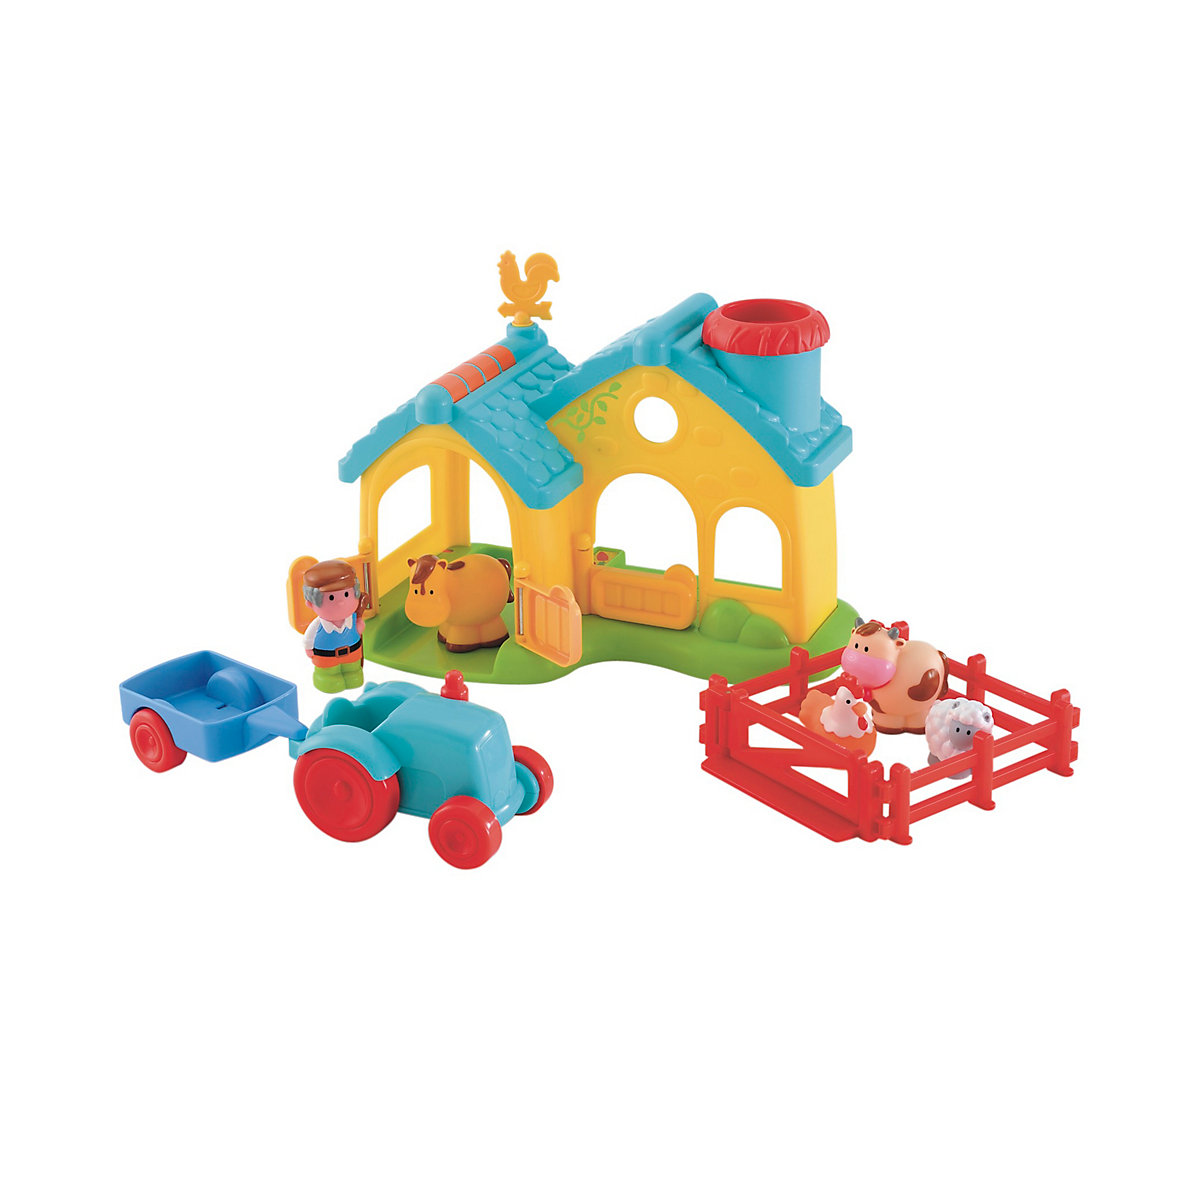 Toys For Girls 18 Months : New happyland boys and girls farm playset toy from